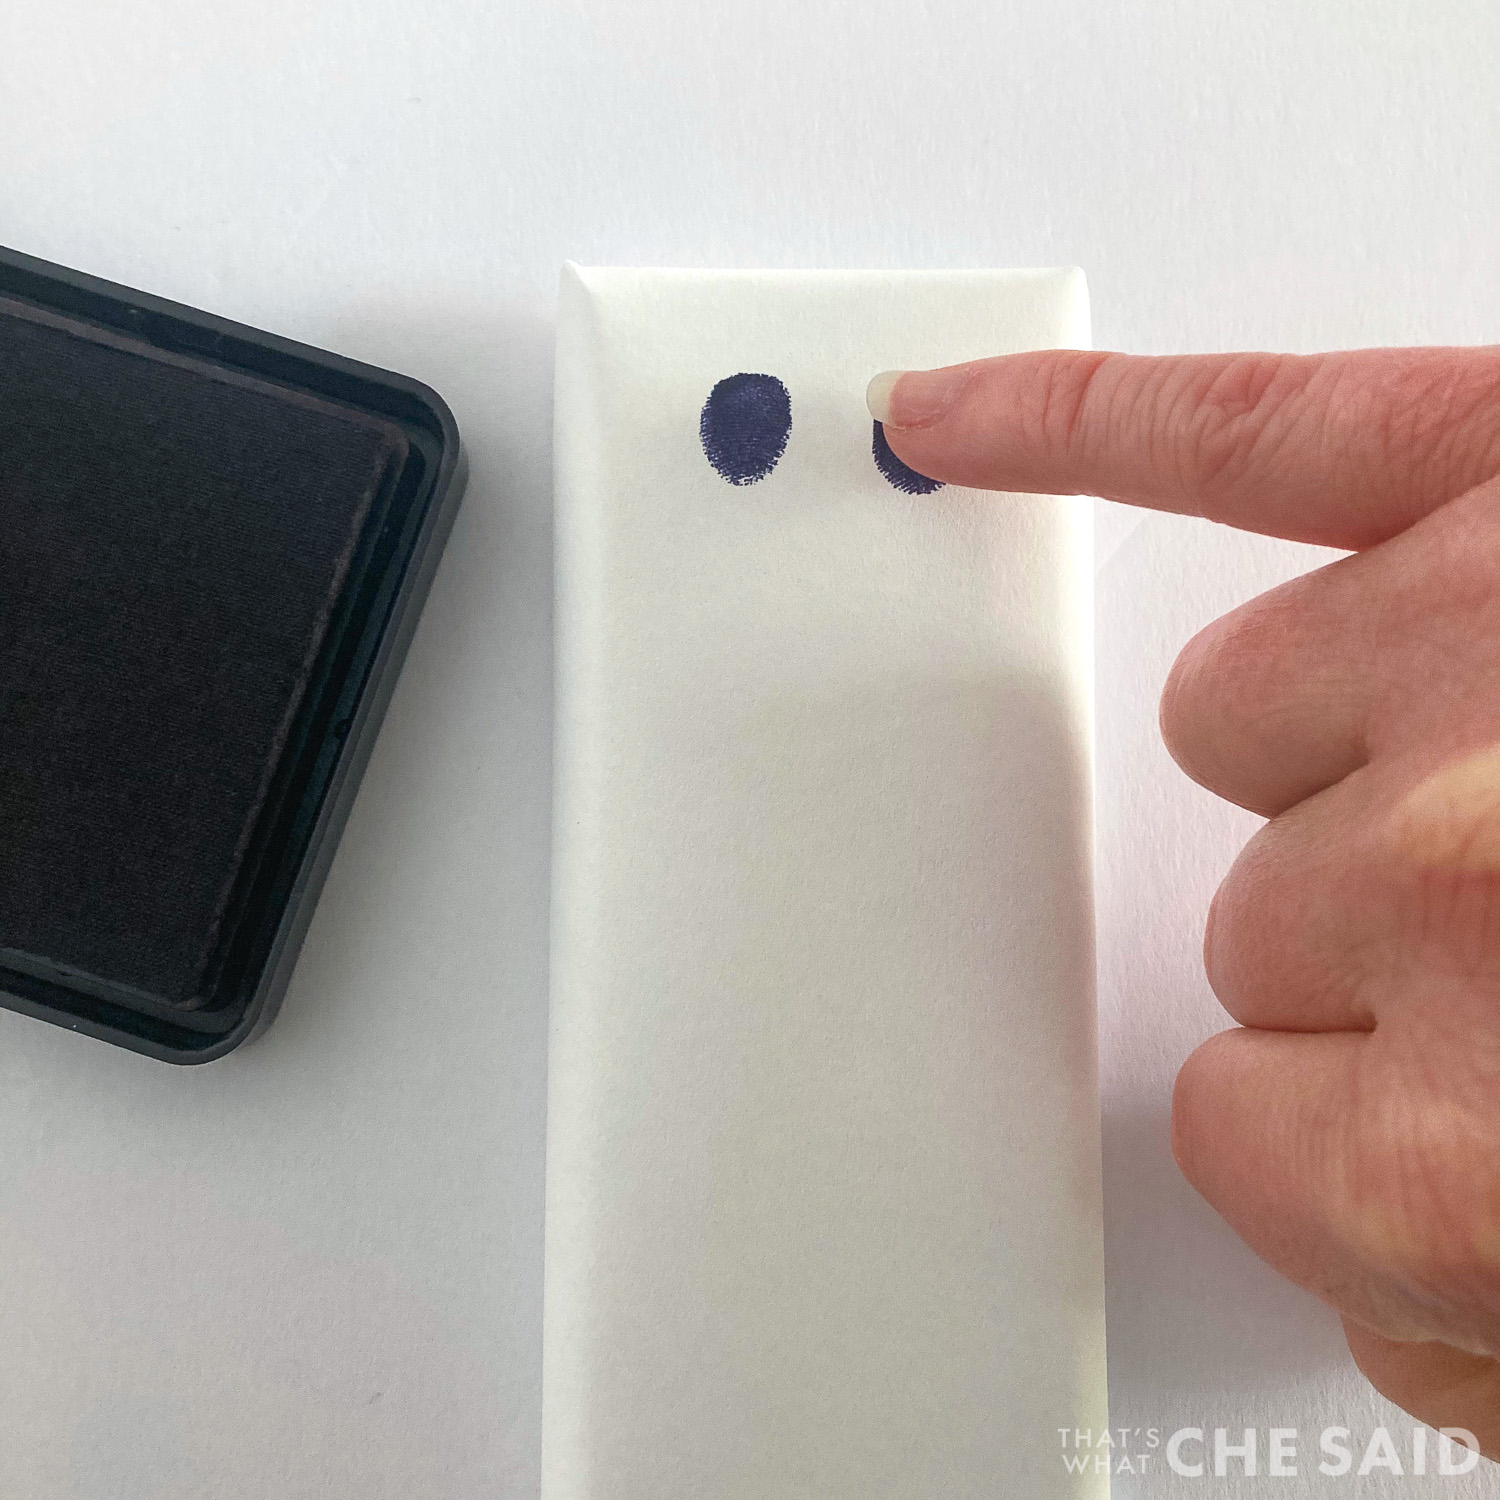 Adding eyes with black stamp pad and pinky fingerprint